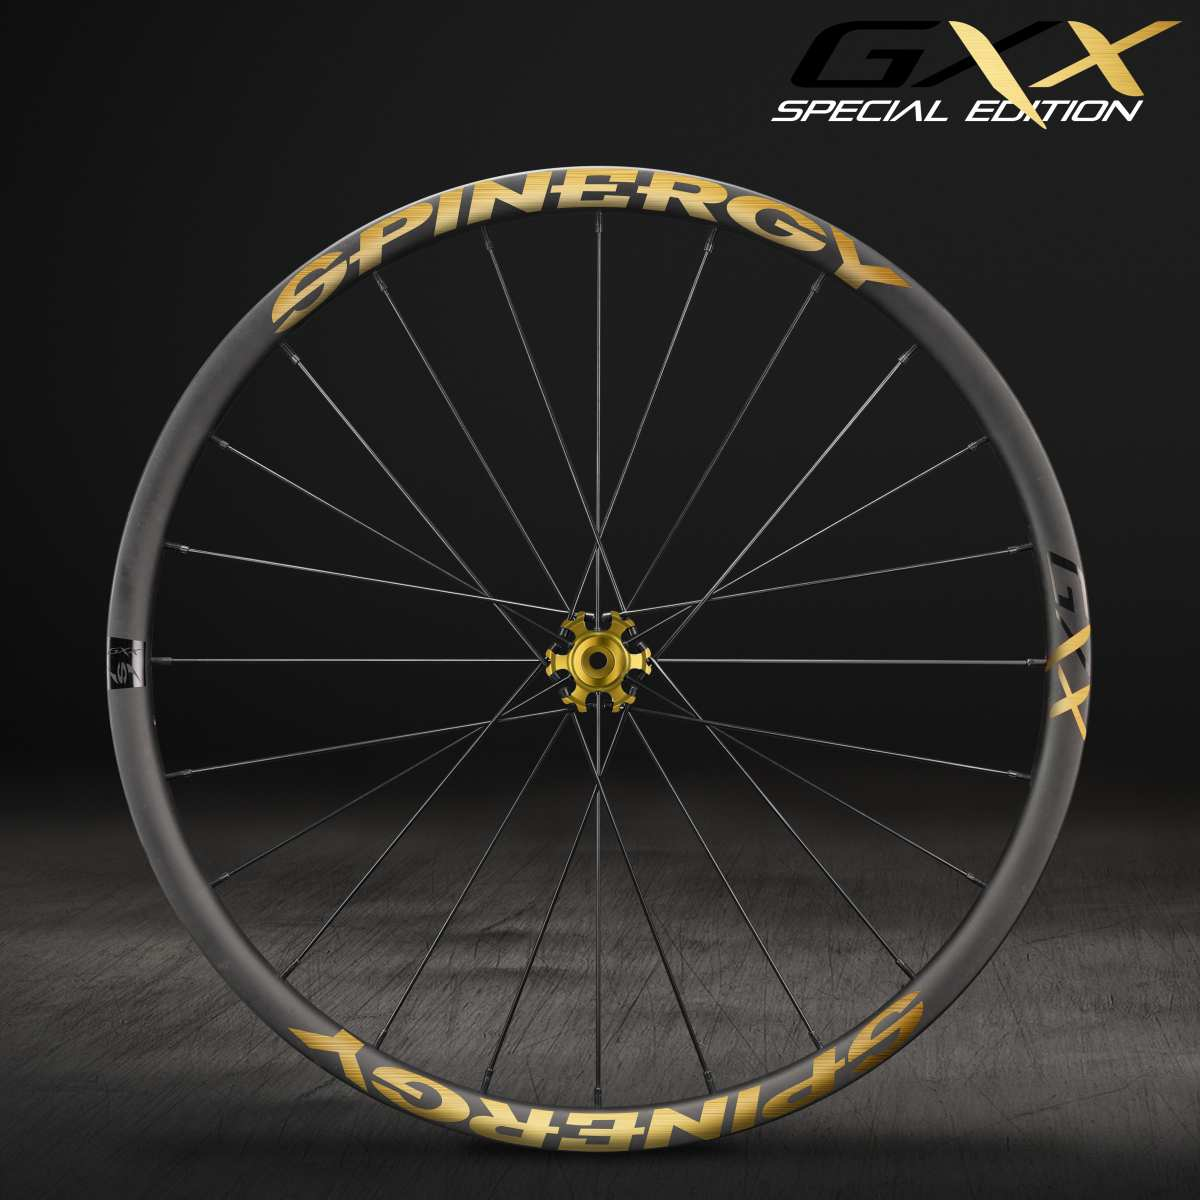 spinergy gxx king of gravel wheelset review